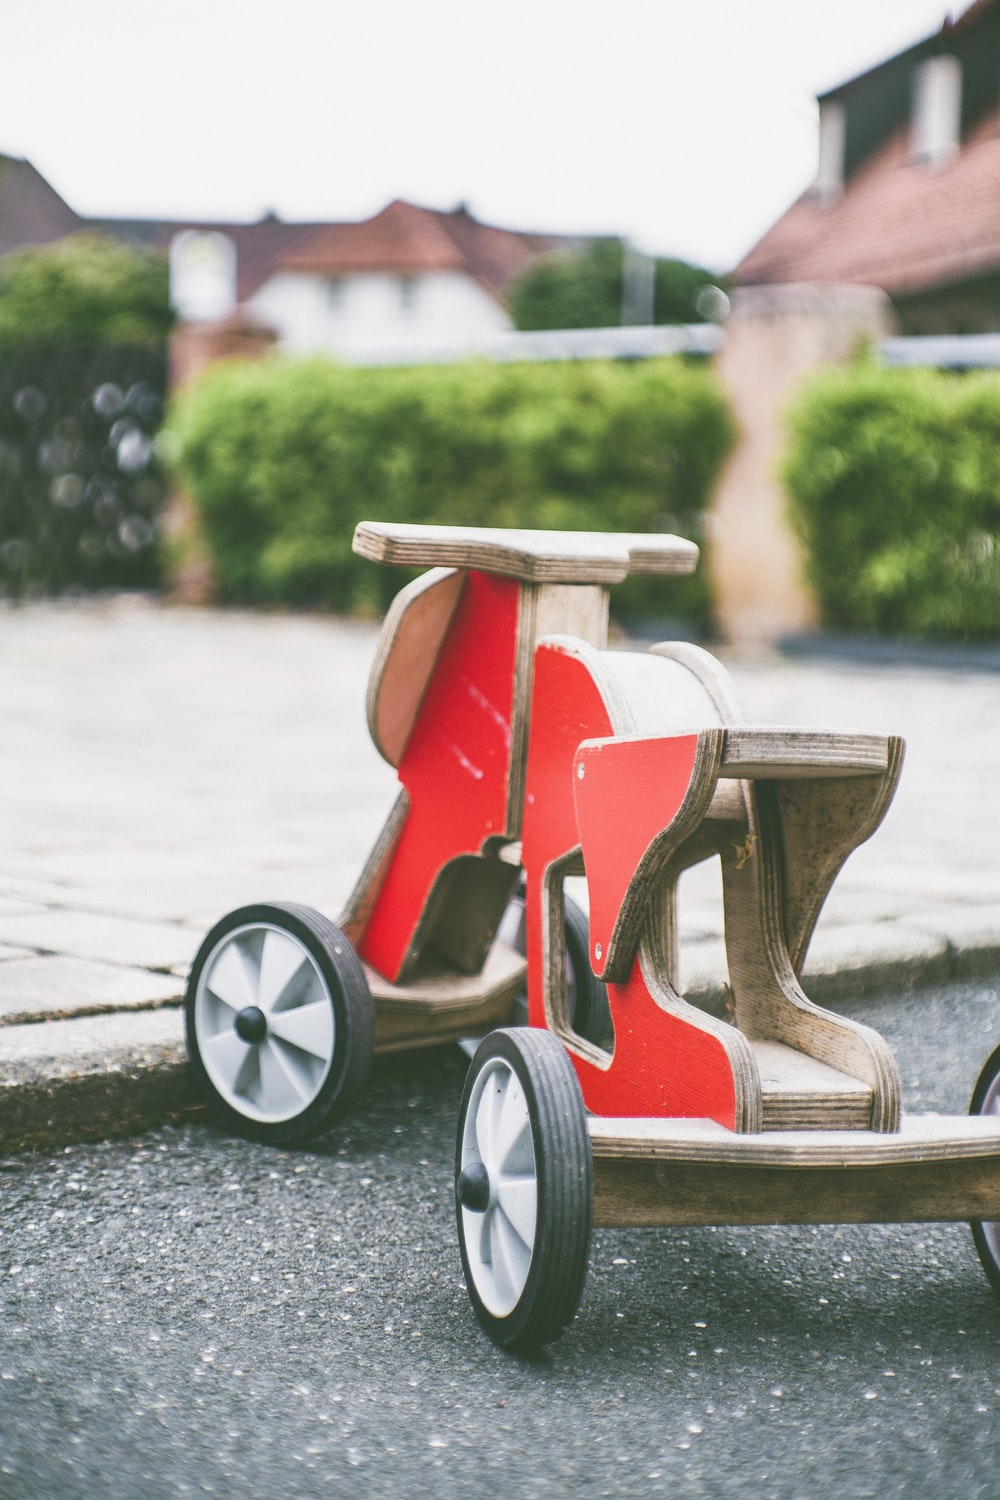 toddler's red and brown wooden ride-on toy on concrete pavement